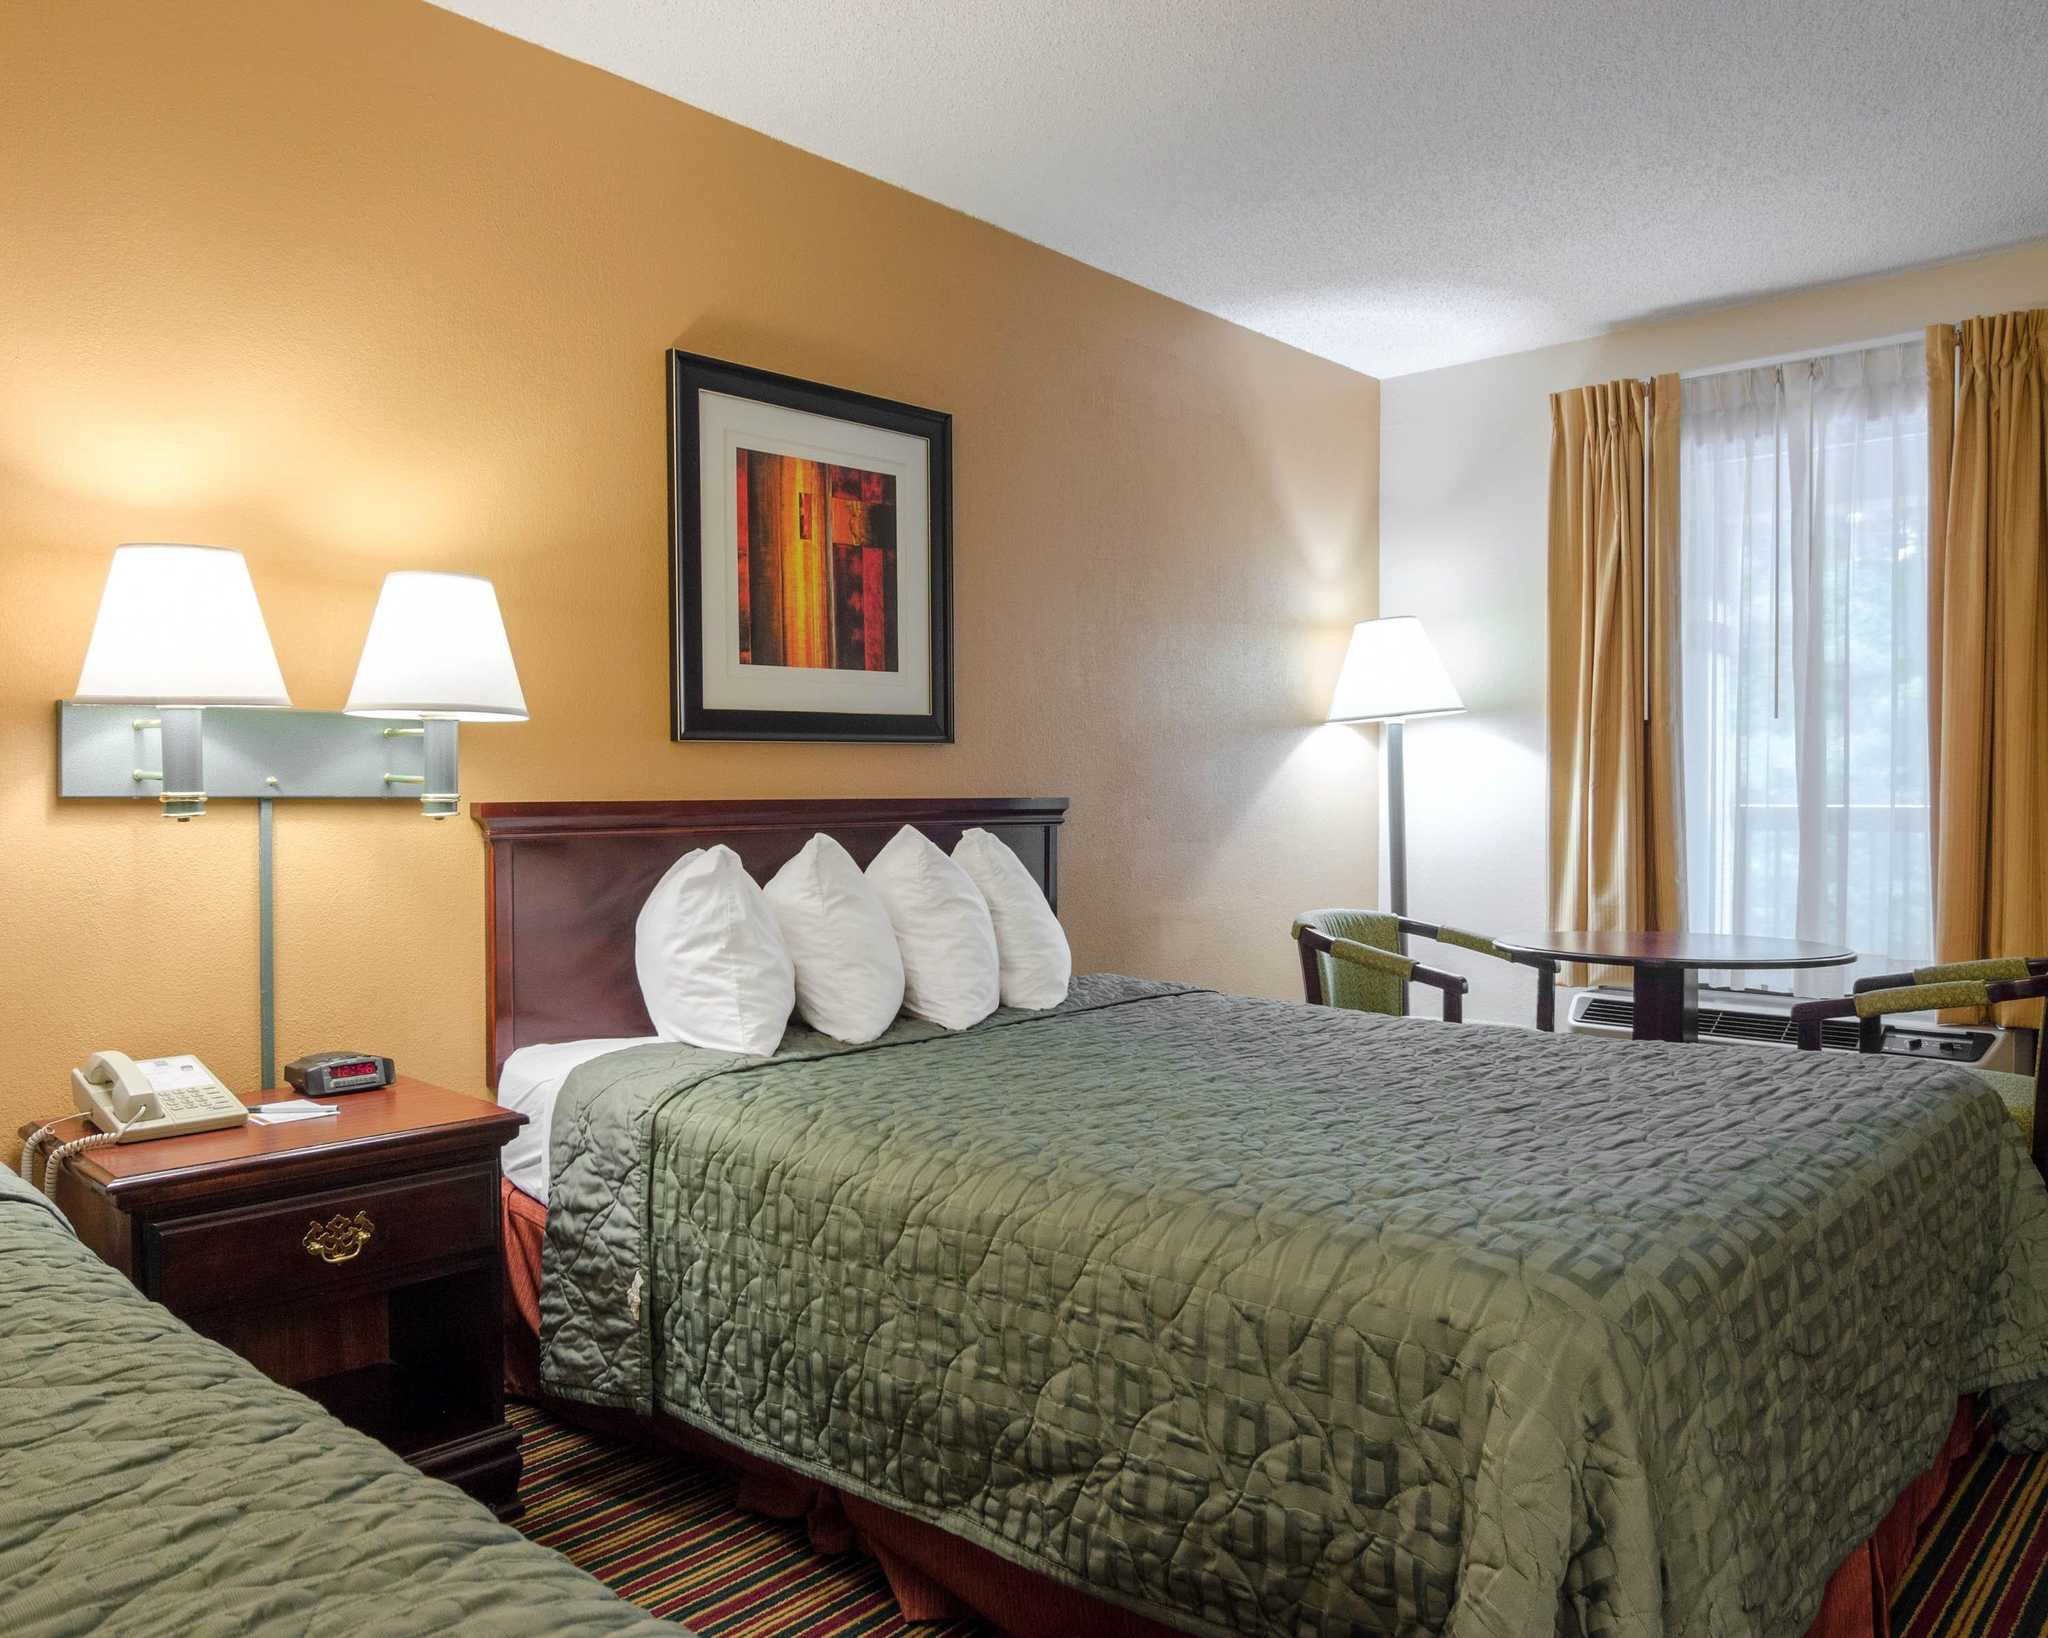 Quality Inn image 16